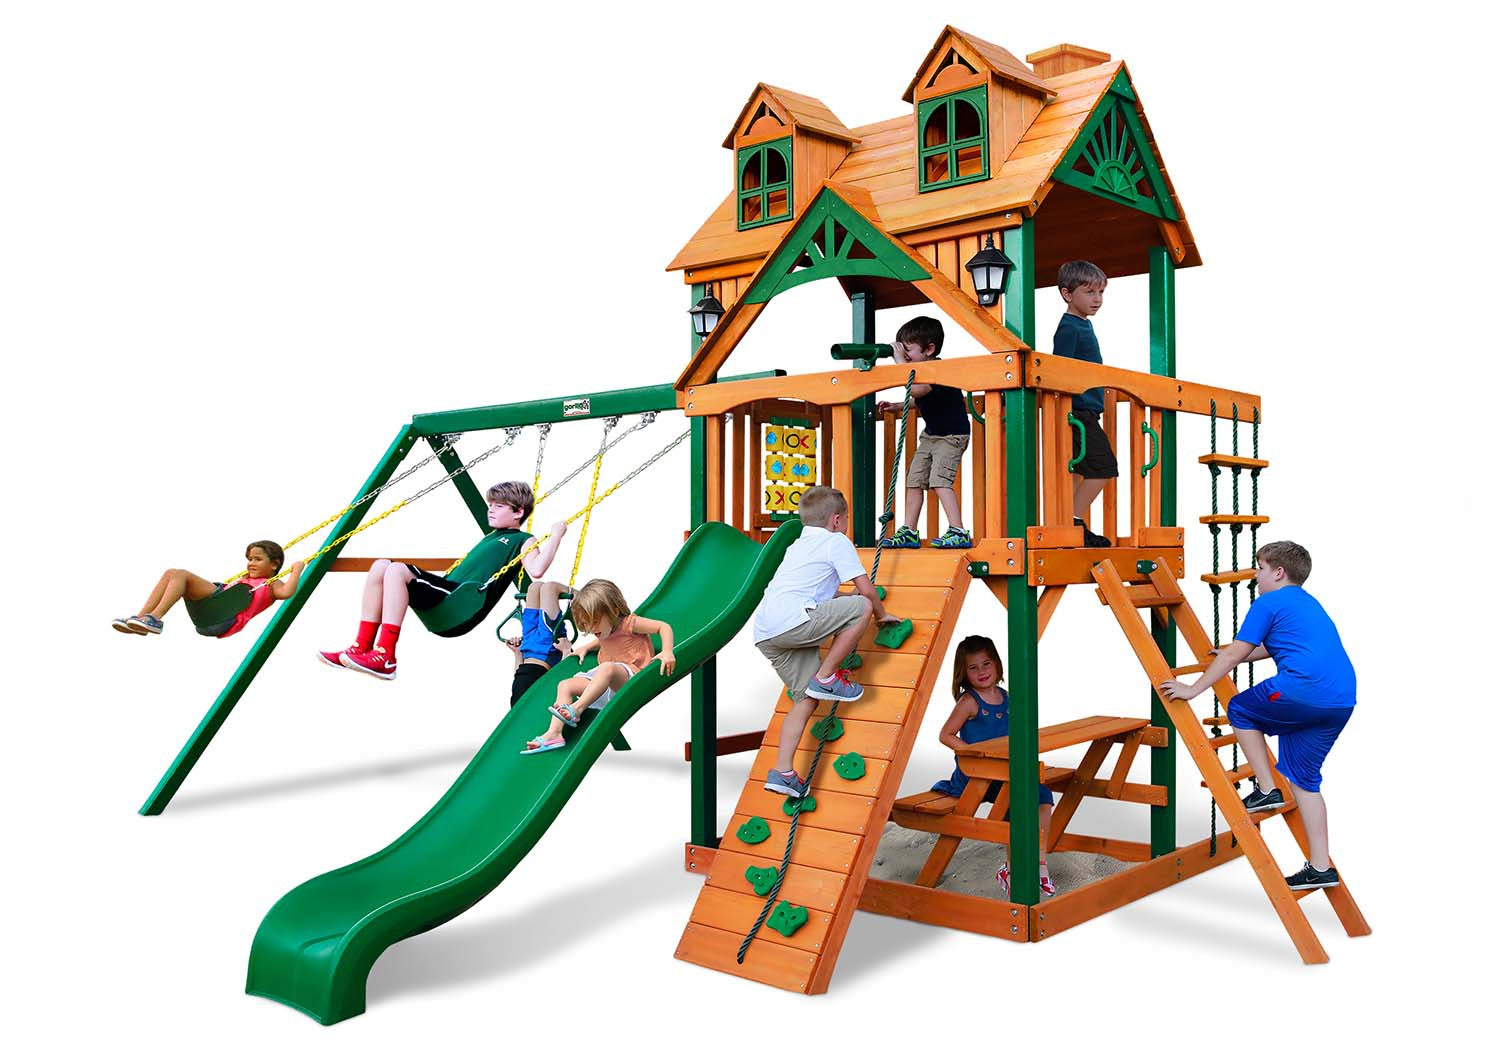 I Just Bought A Wooden Swing Set Over the Internet - Now What?